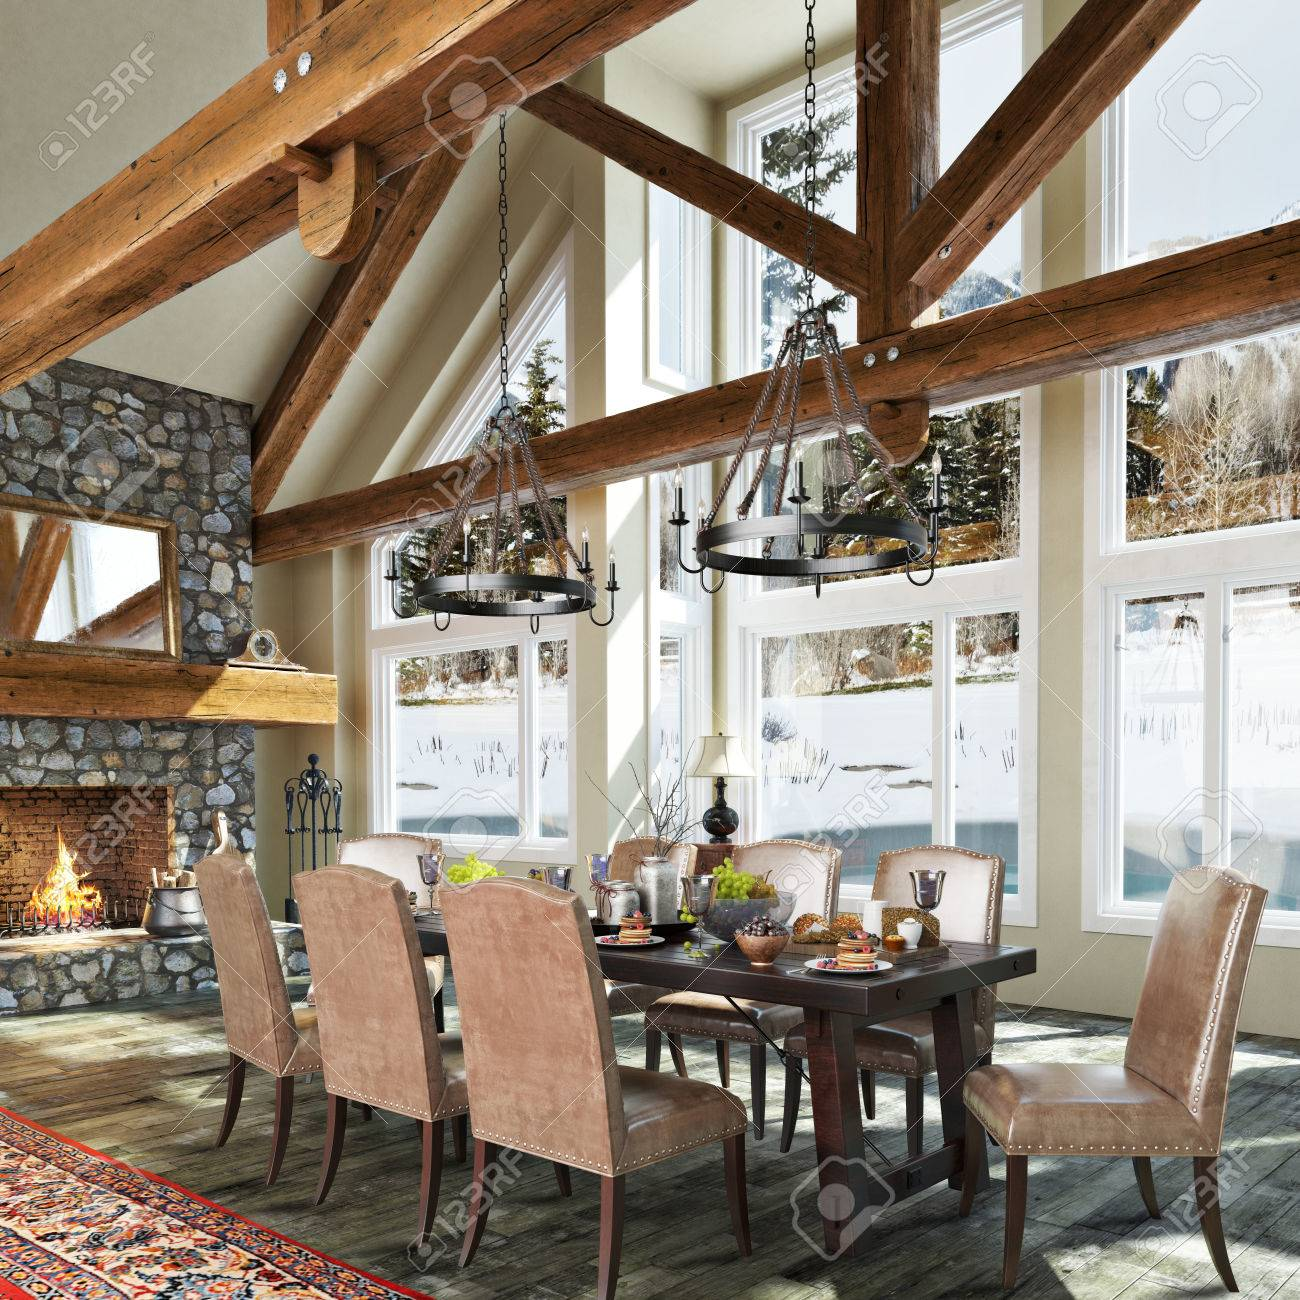 Cabin interior fireplace - Luxurious Open Floor Cabin Interior Dinning Room Design With Roaring Stone Fireplace And Winter Scenic Background